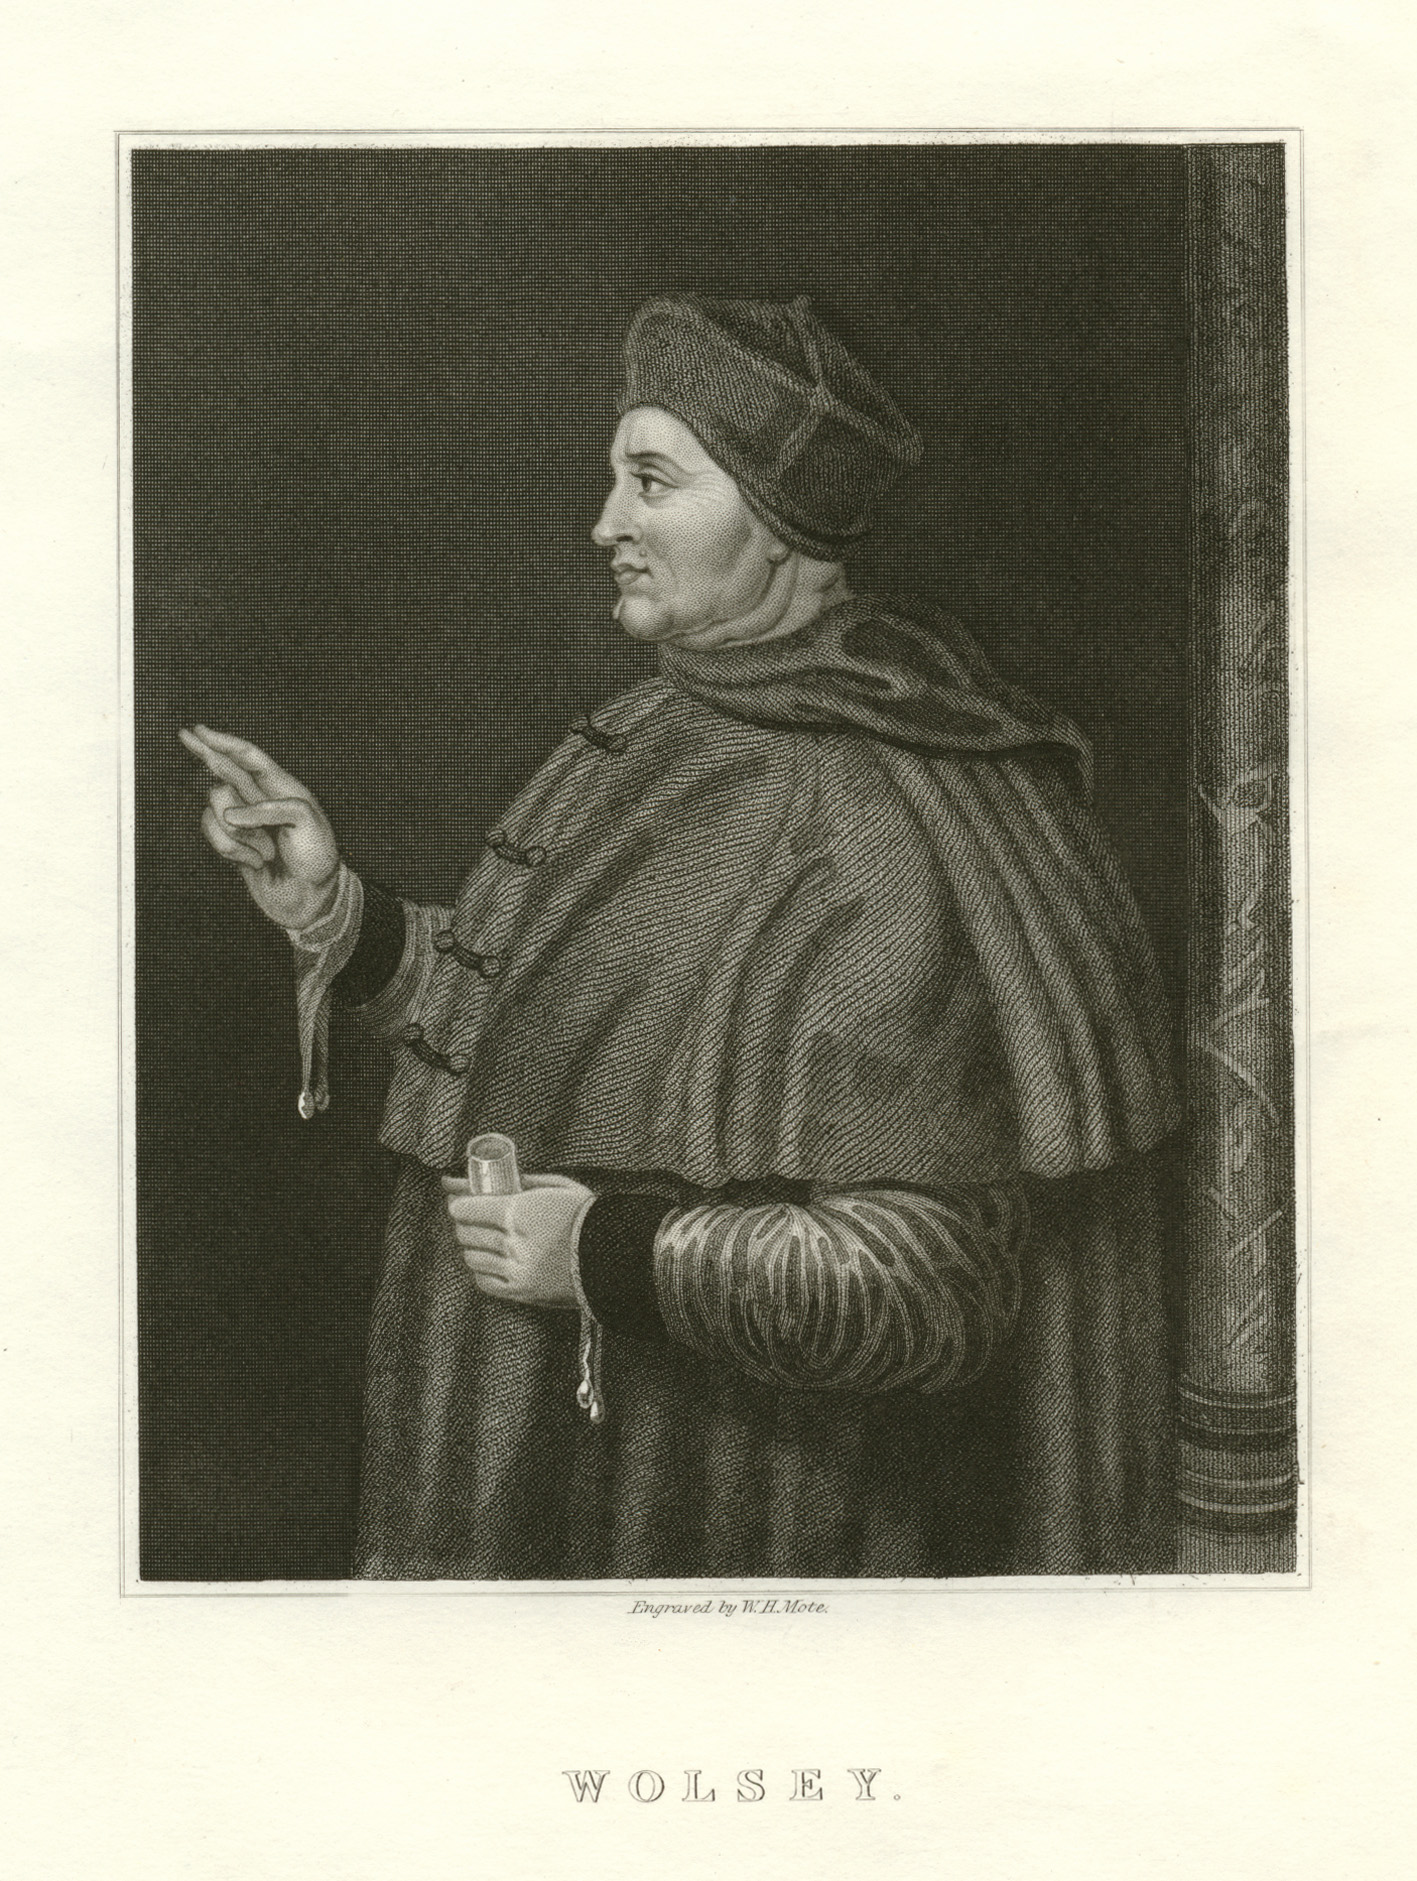 Wolsey. Engraved by W.H. Mote. From a painting by Holbein.